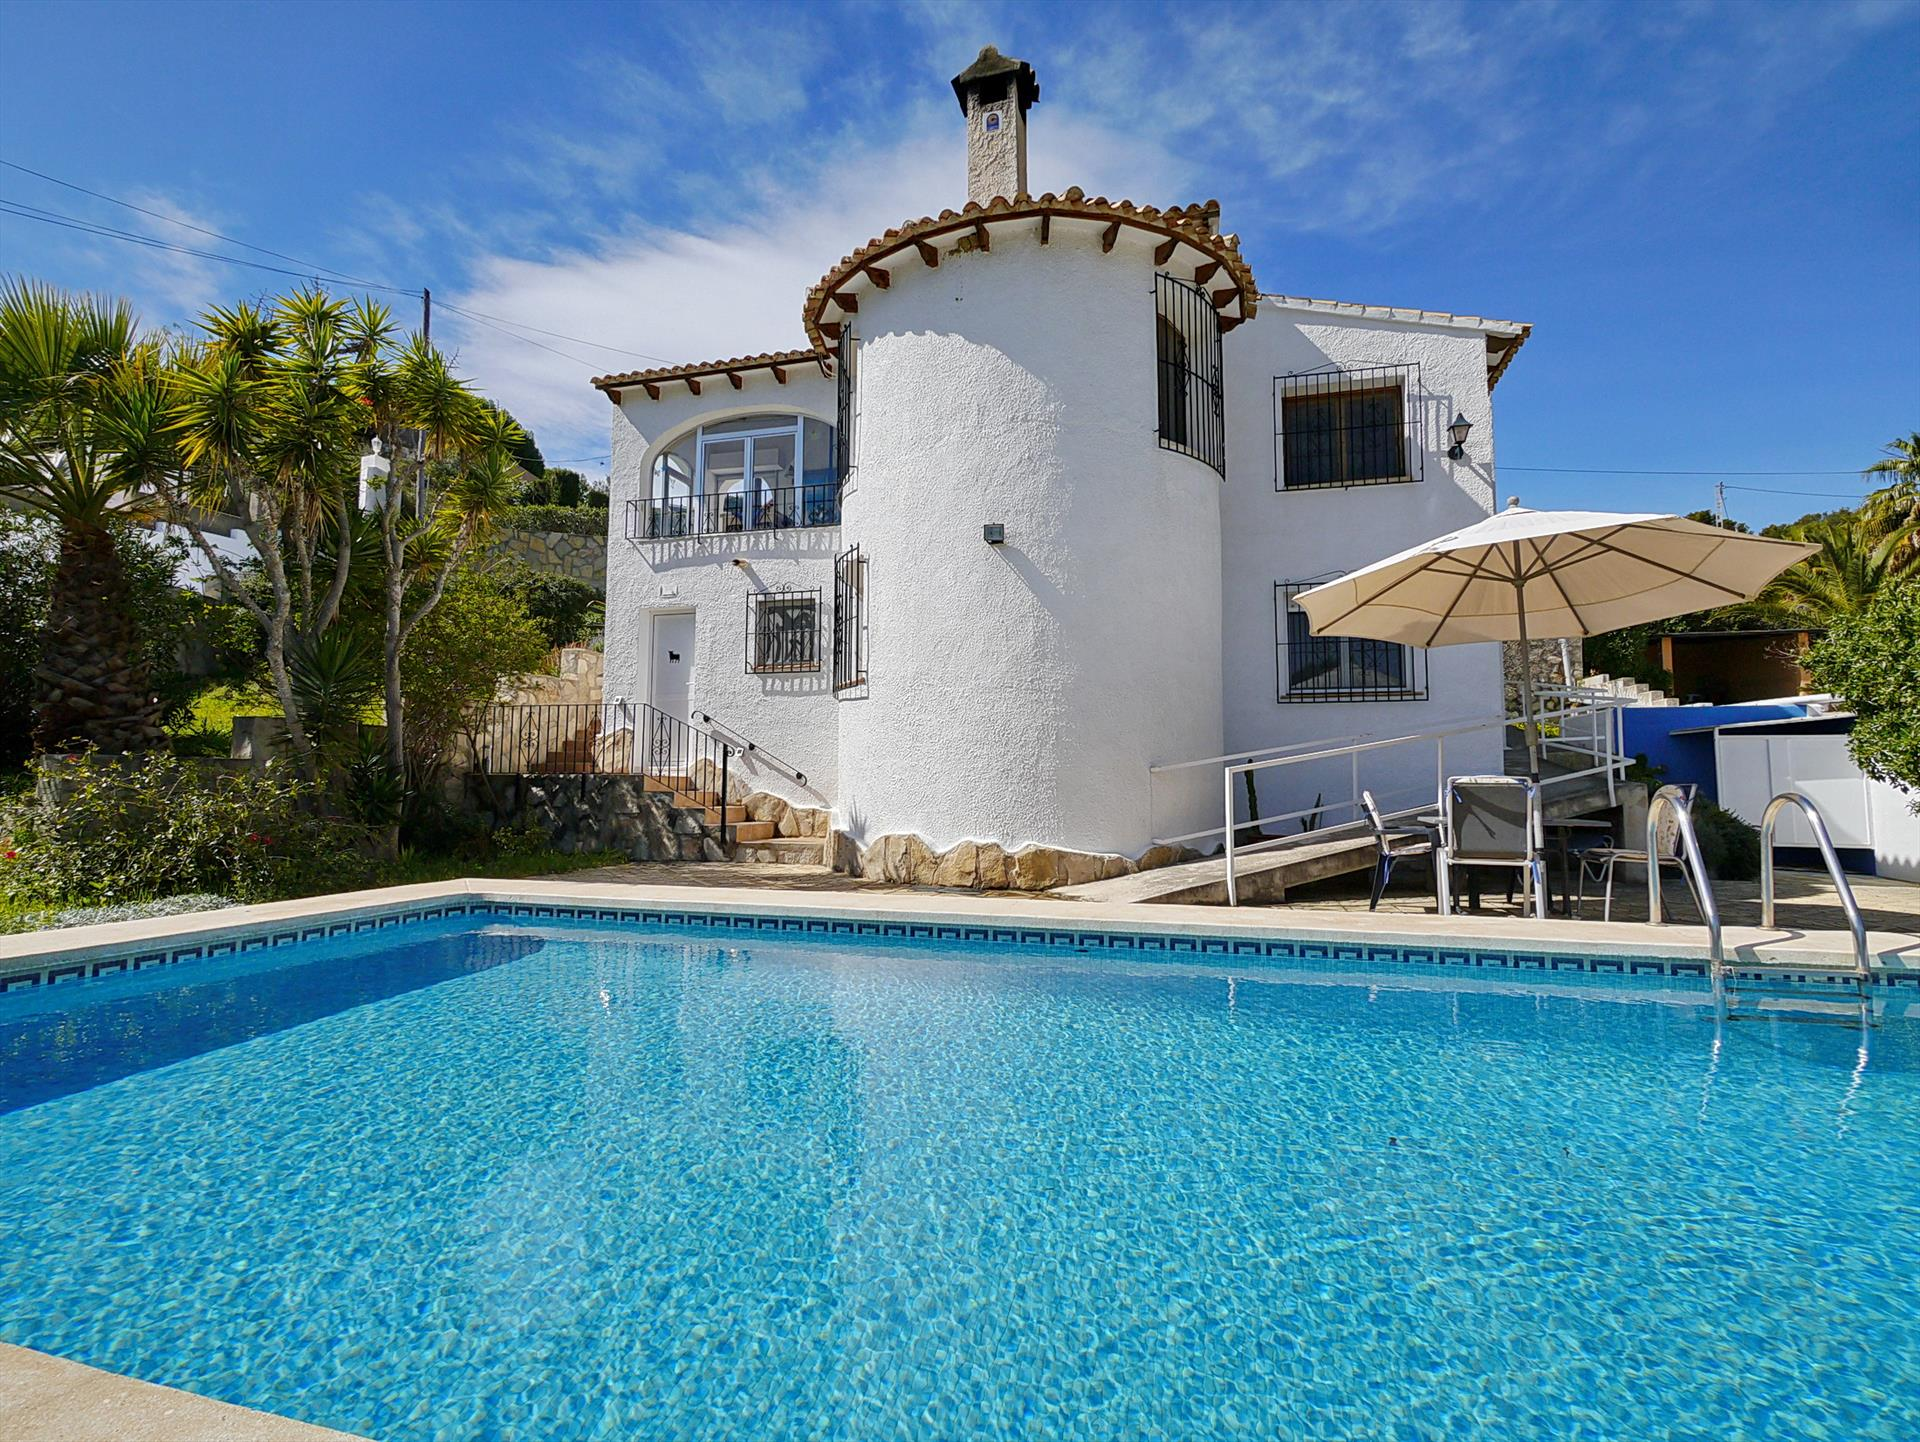 Juliane, Wonderful and cheerful villa with private pool in Benissa, on the Costa Blanca, Spain for 6 persons. The villa is situated.....